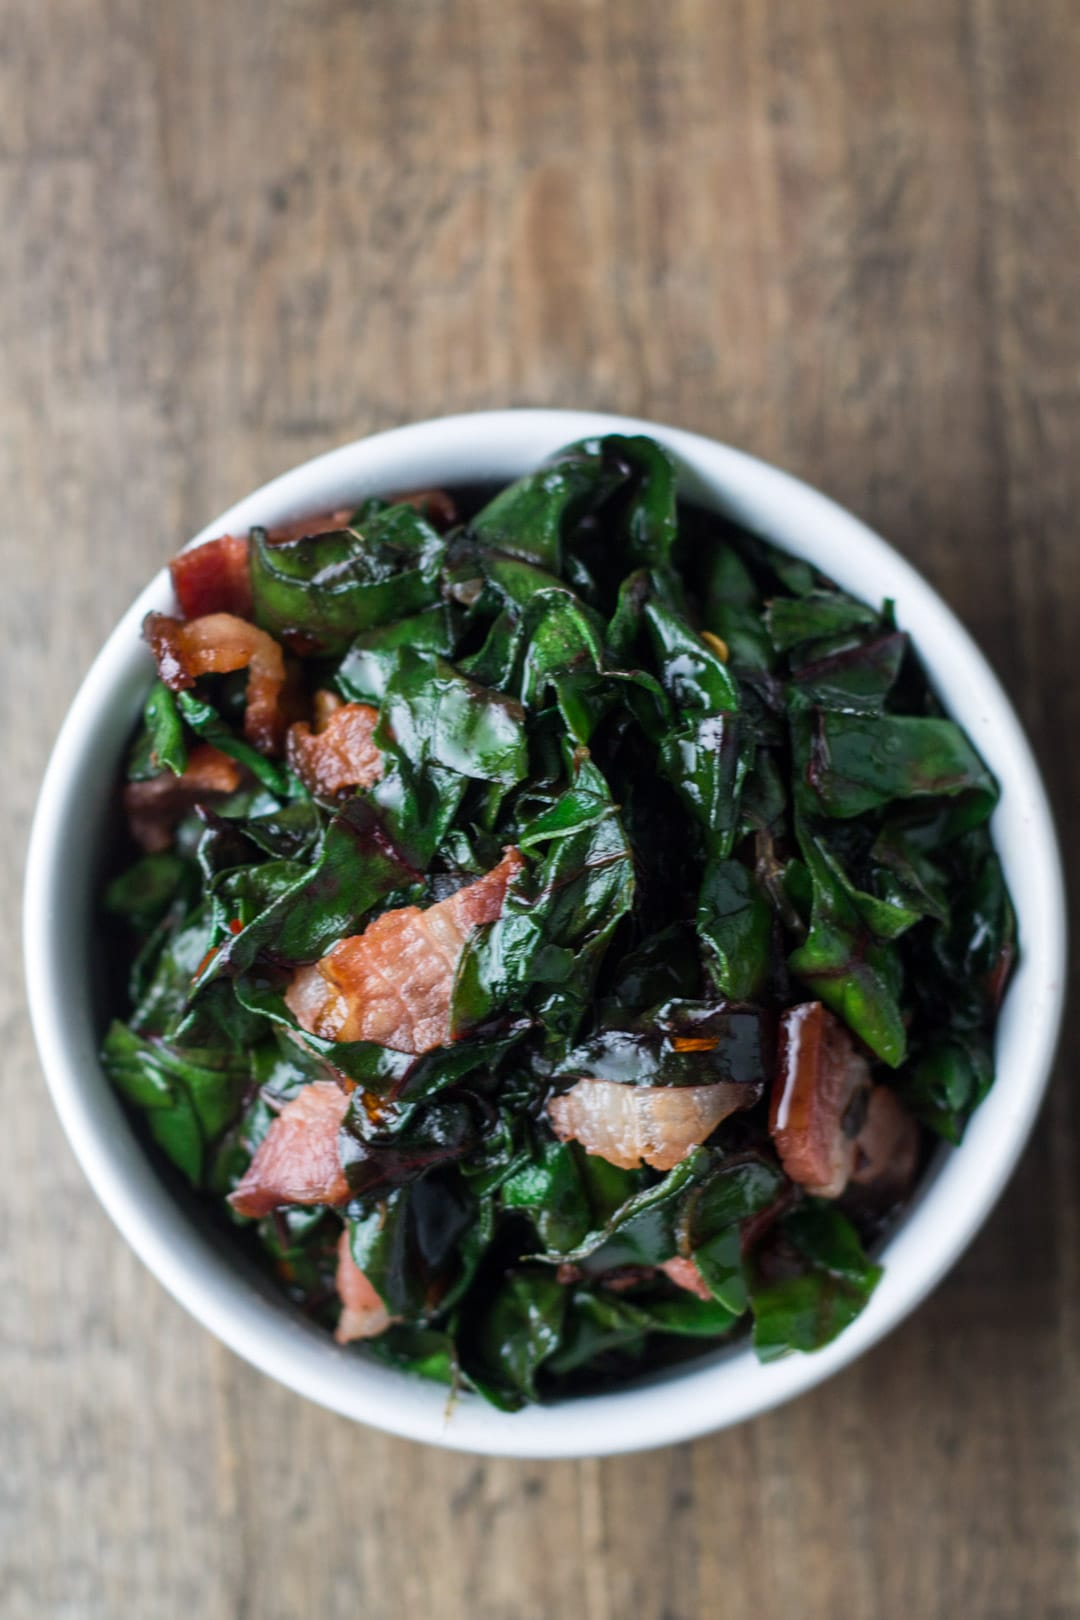 Looking down at a small bowl filled with sauteed Swiss chard with bacon